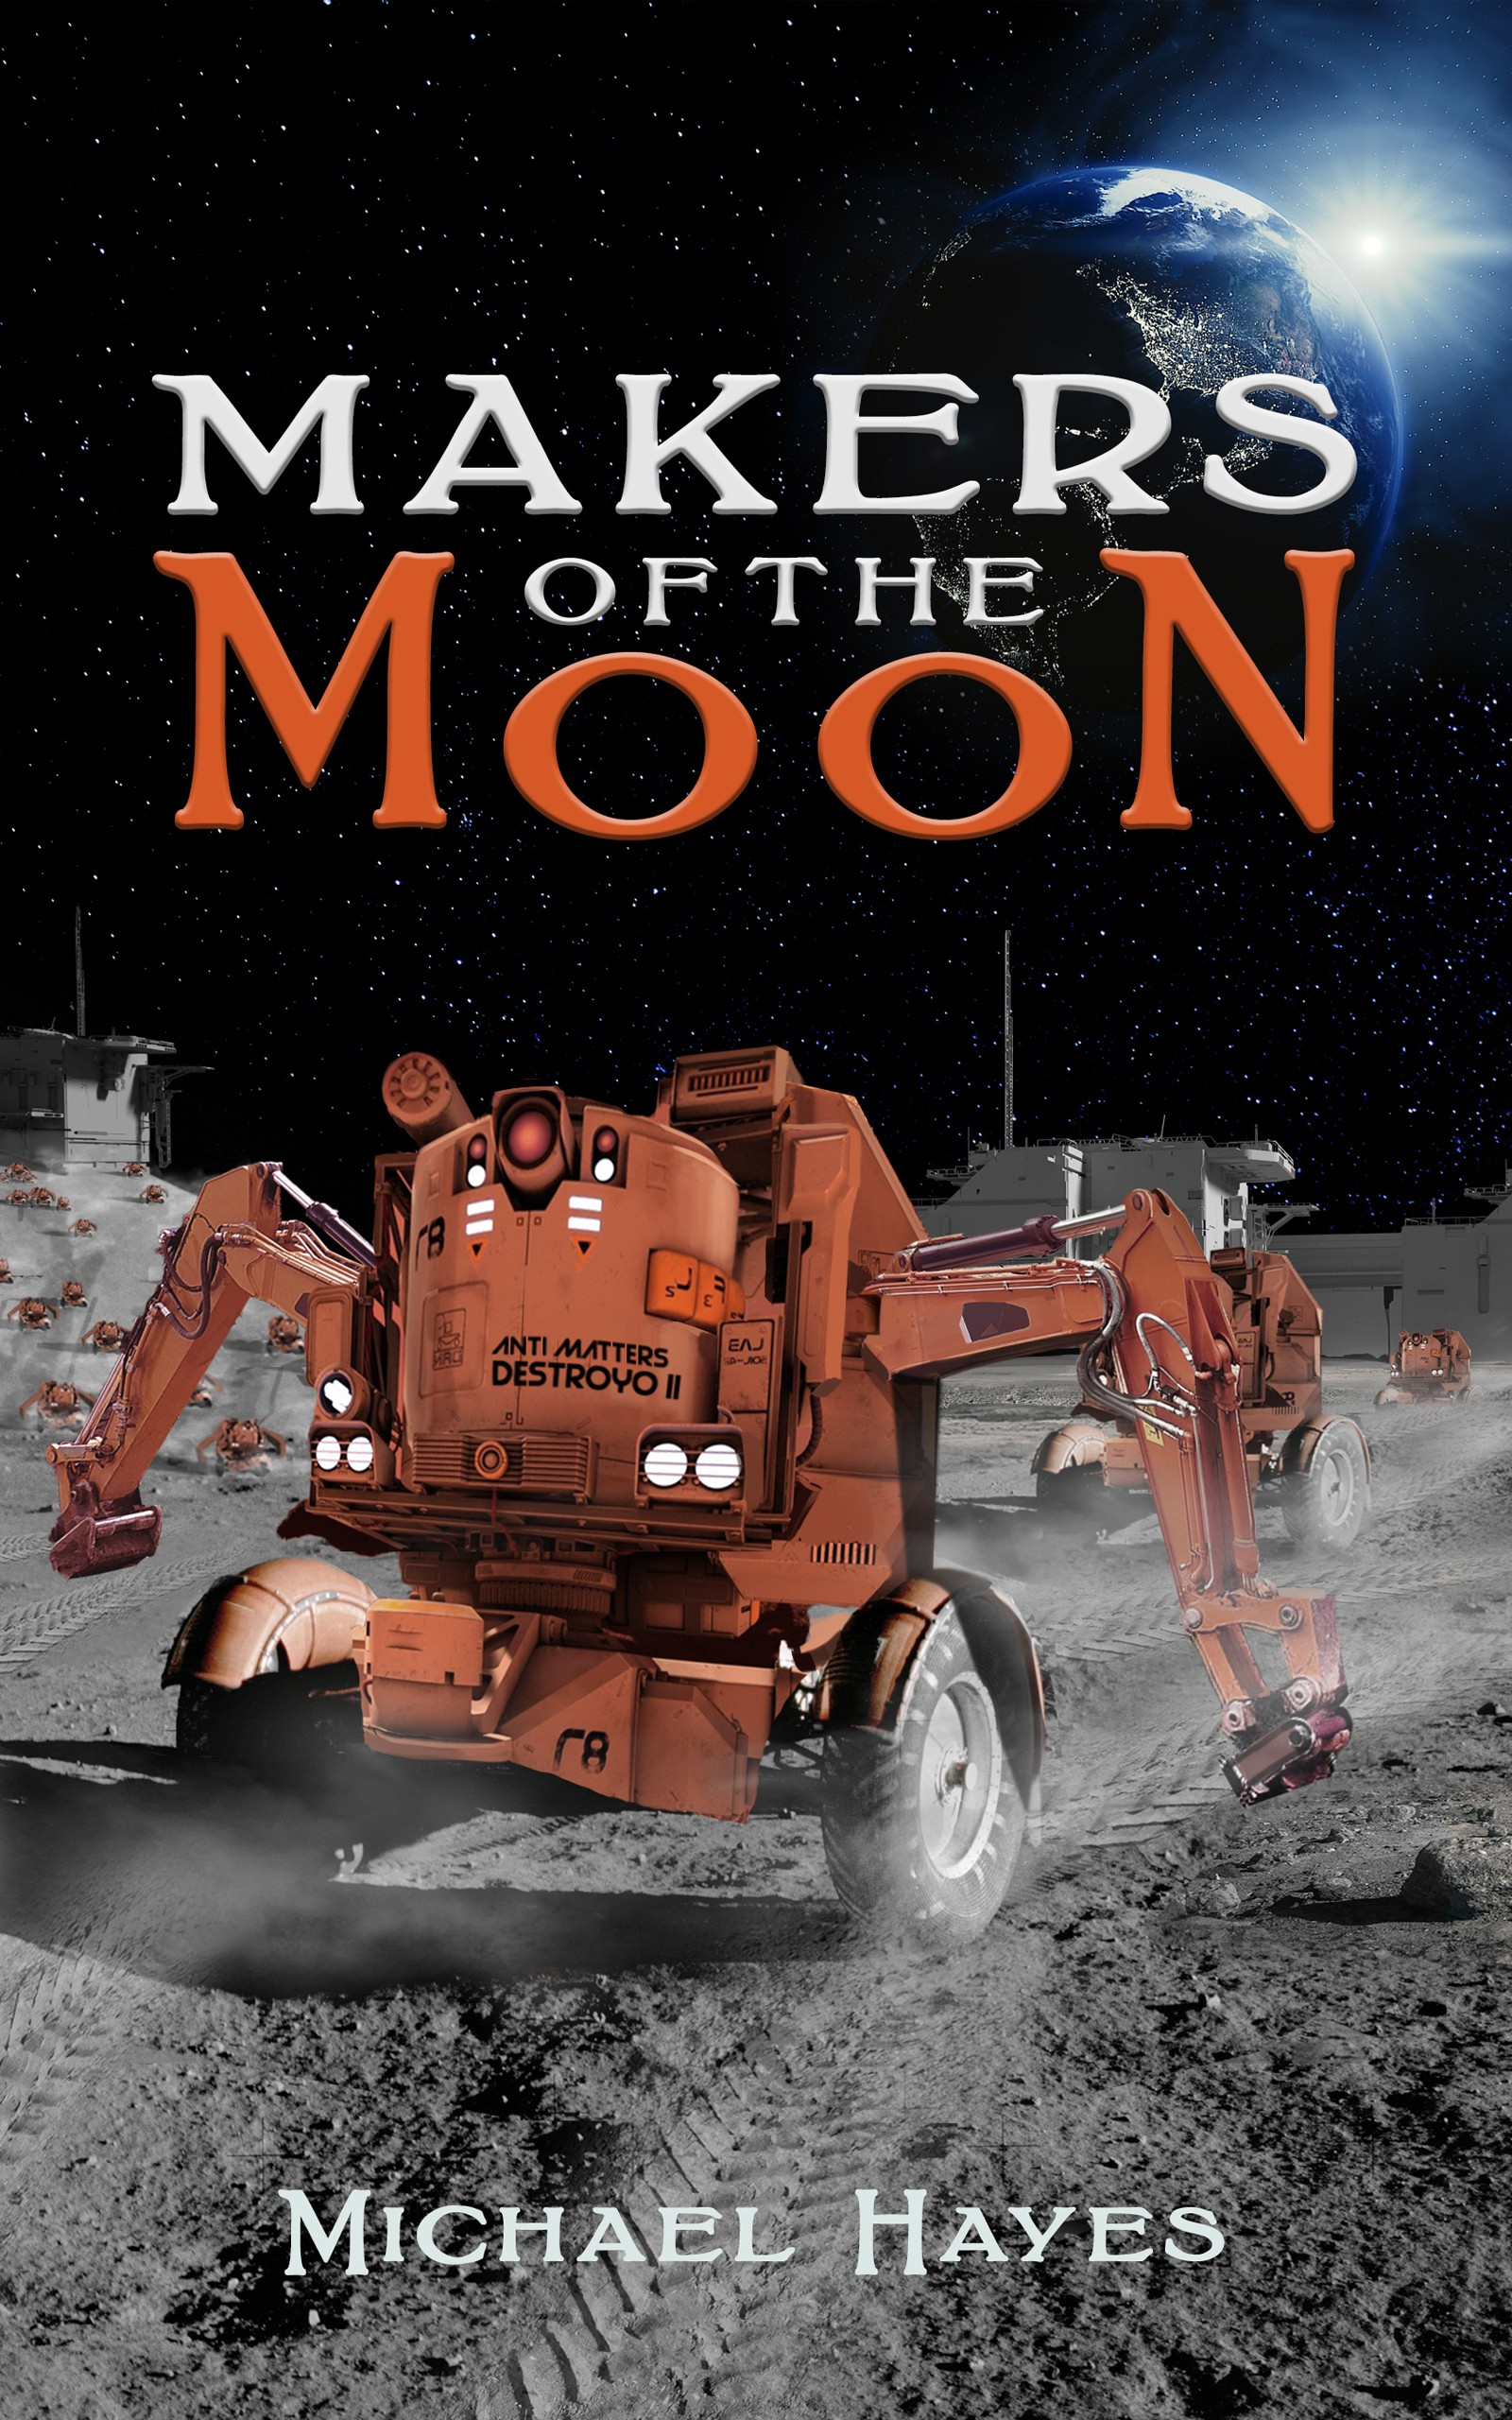 Designing Cover for fiction book where Gamers Take Over the Moon?